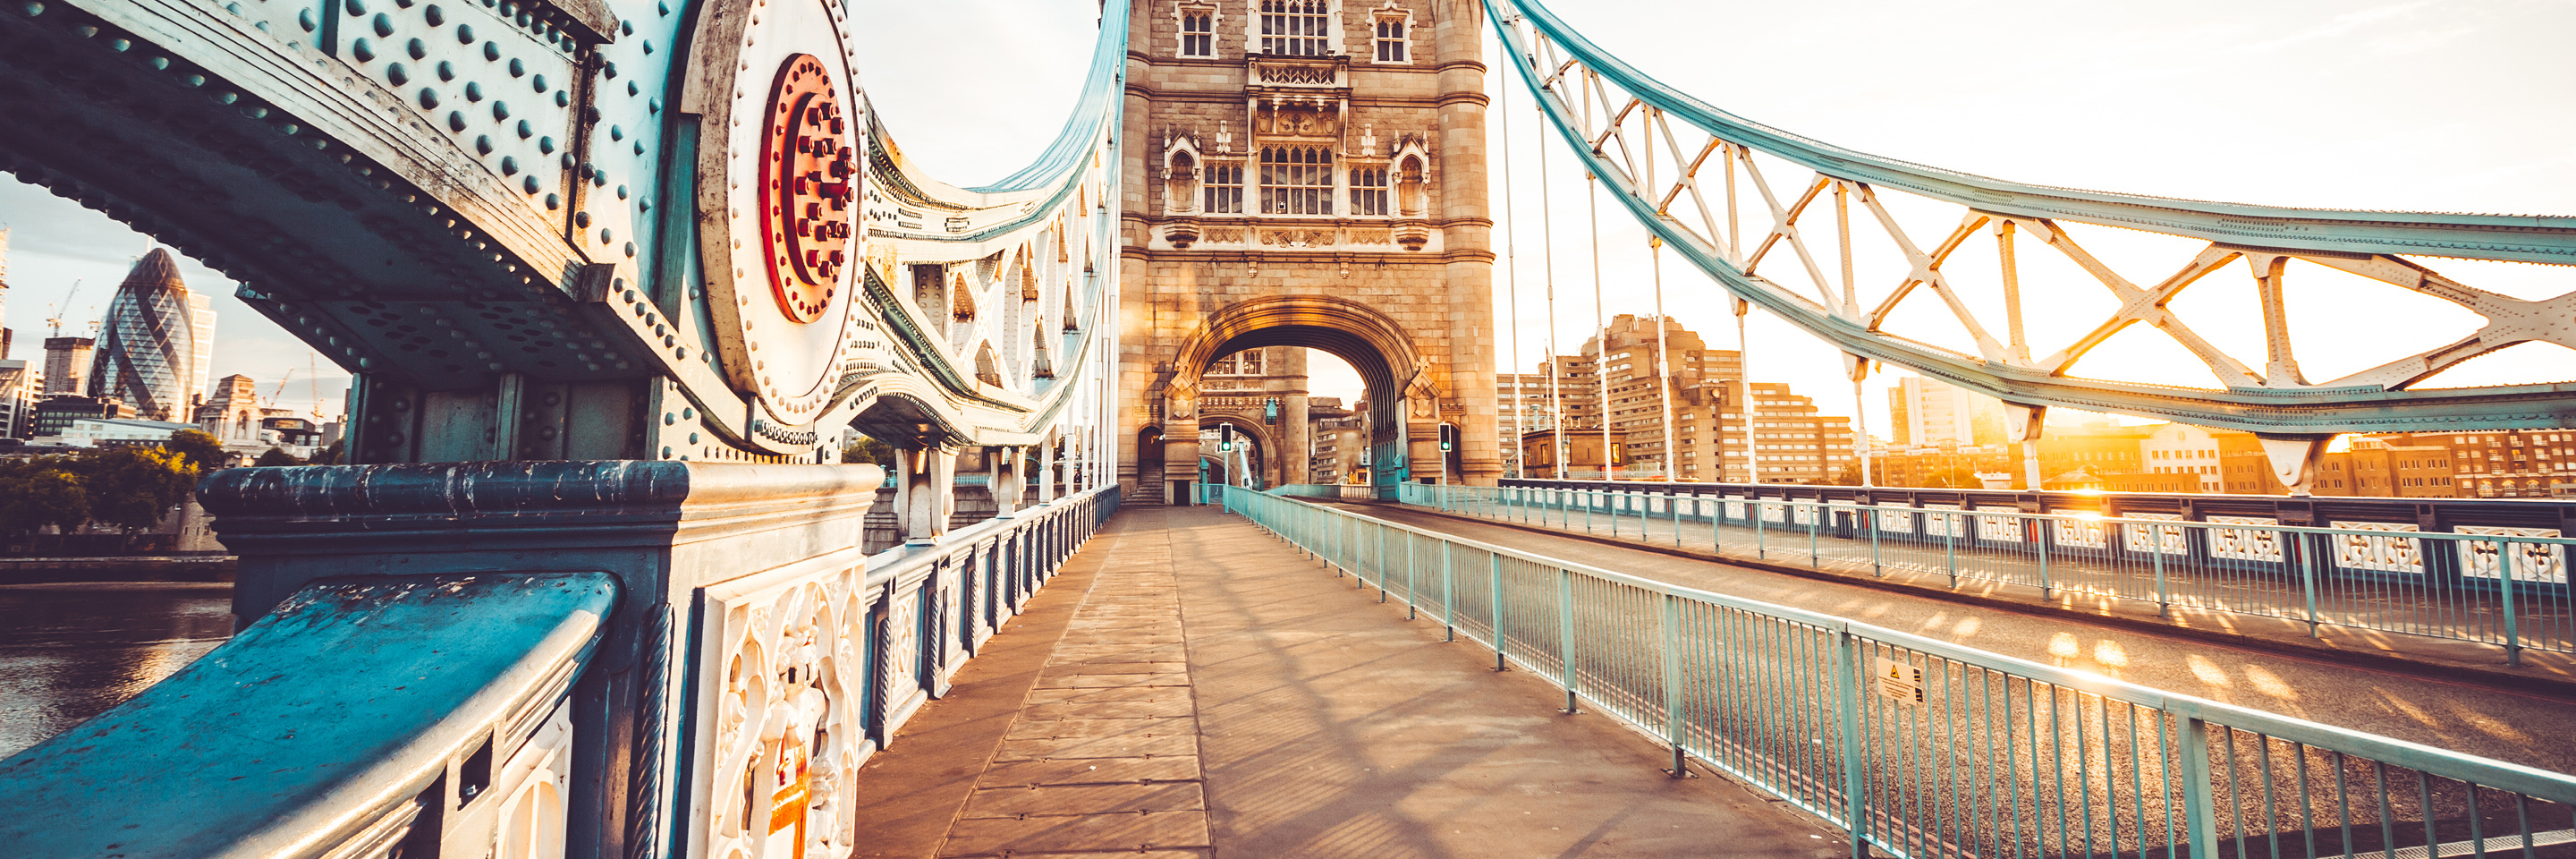 Jewels of Central Europe with 2 Nights in London & 2 Nights in Paris with Jewish Heritage (Eastbound)